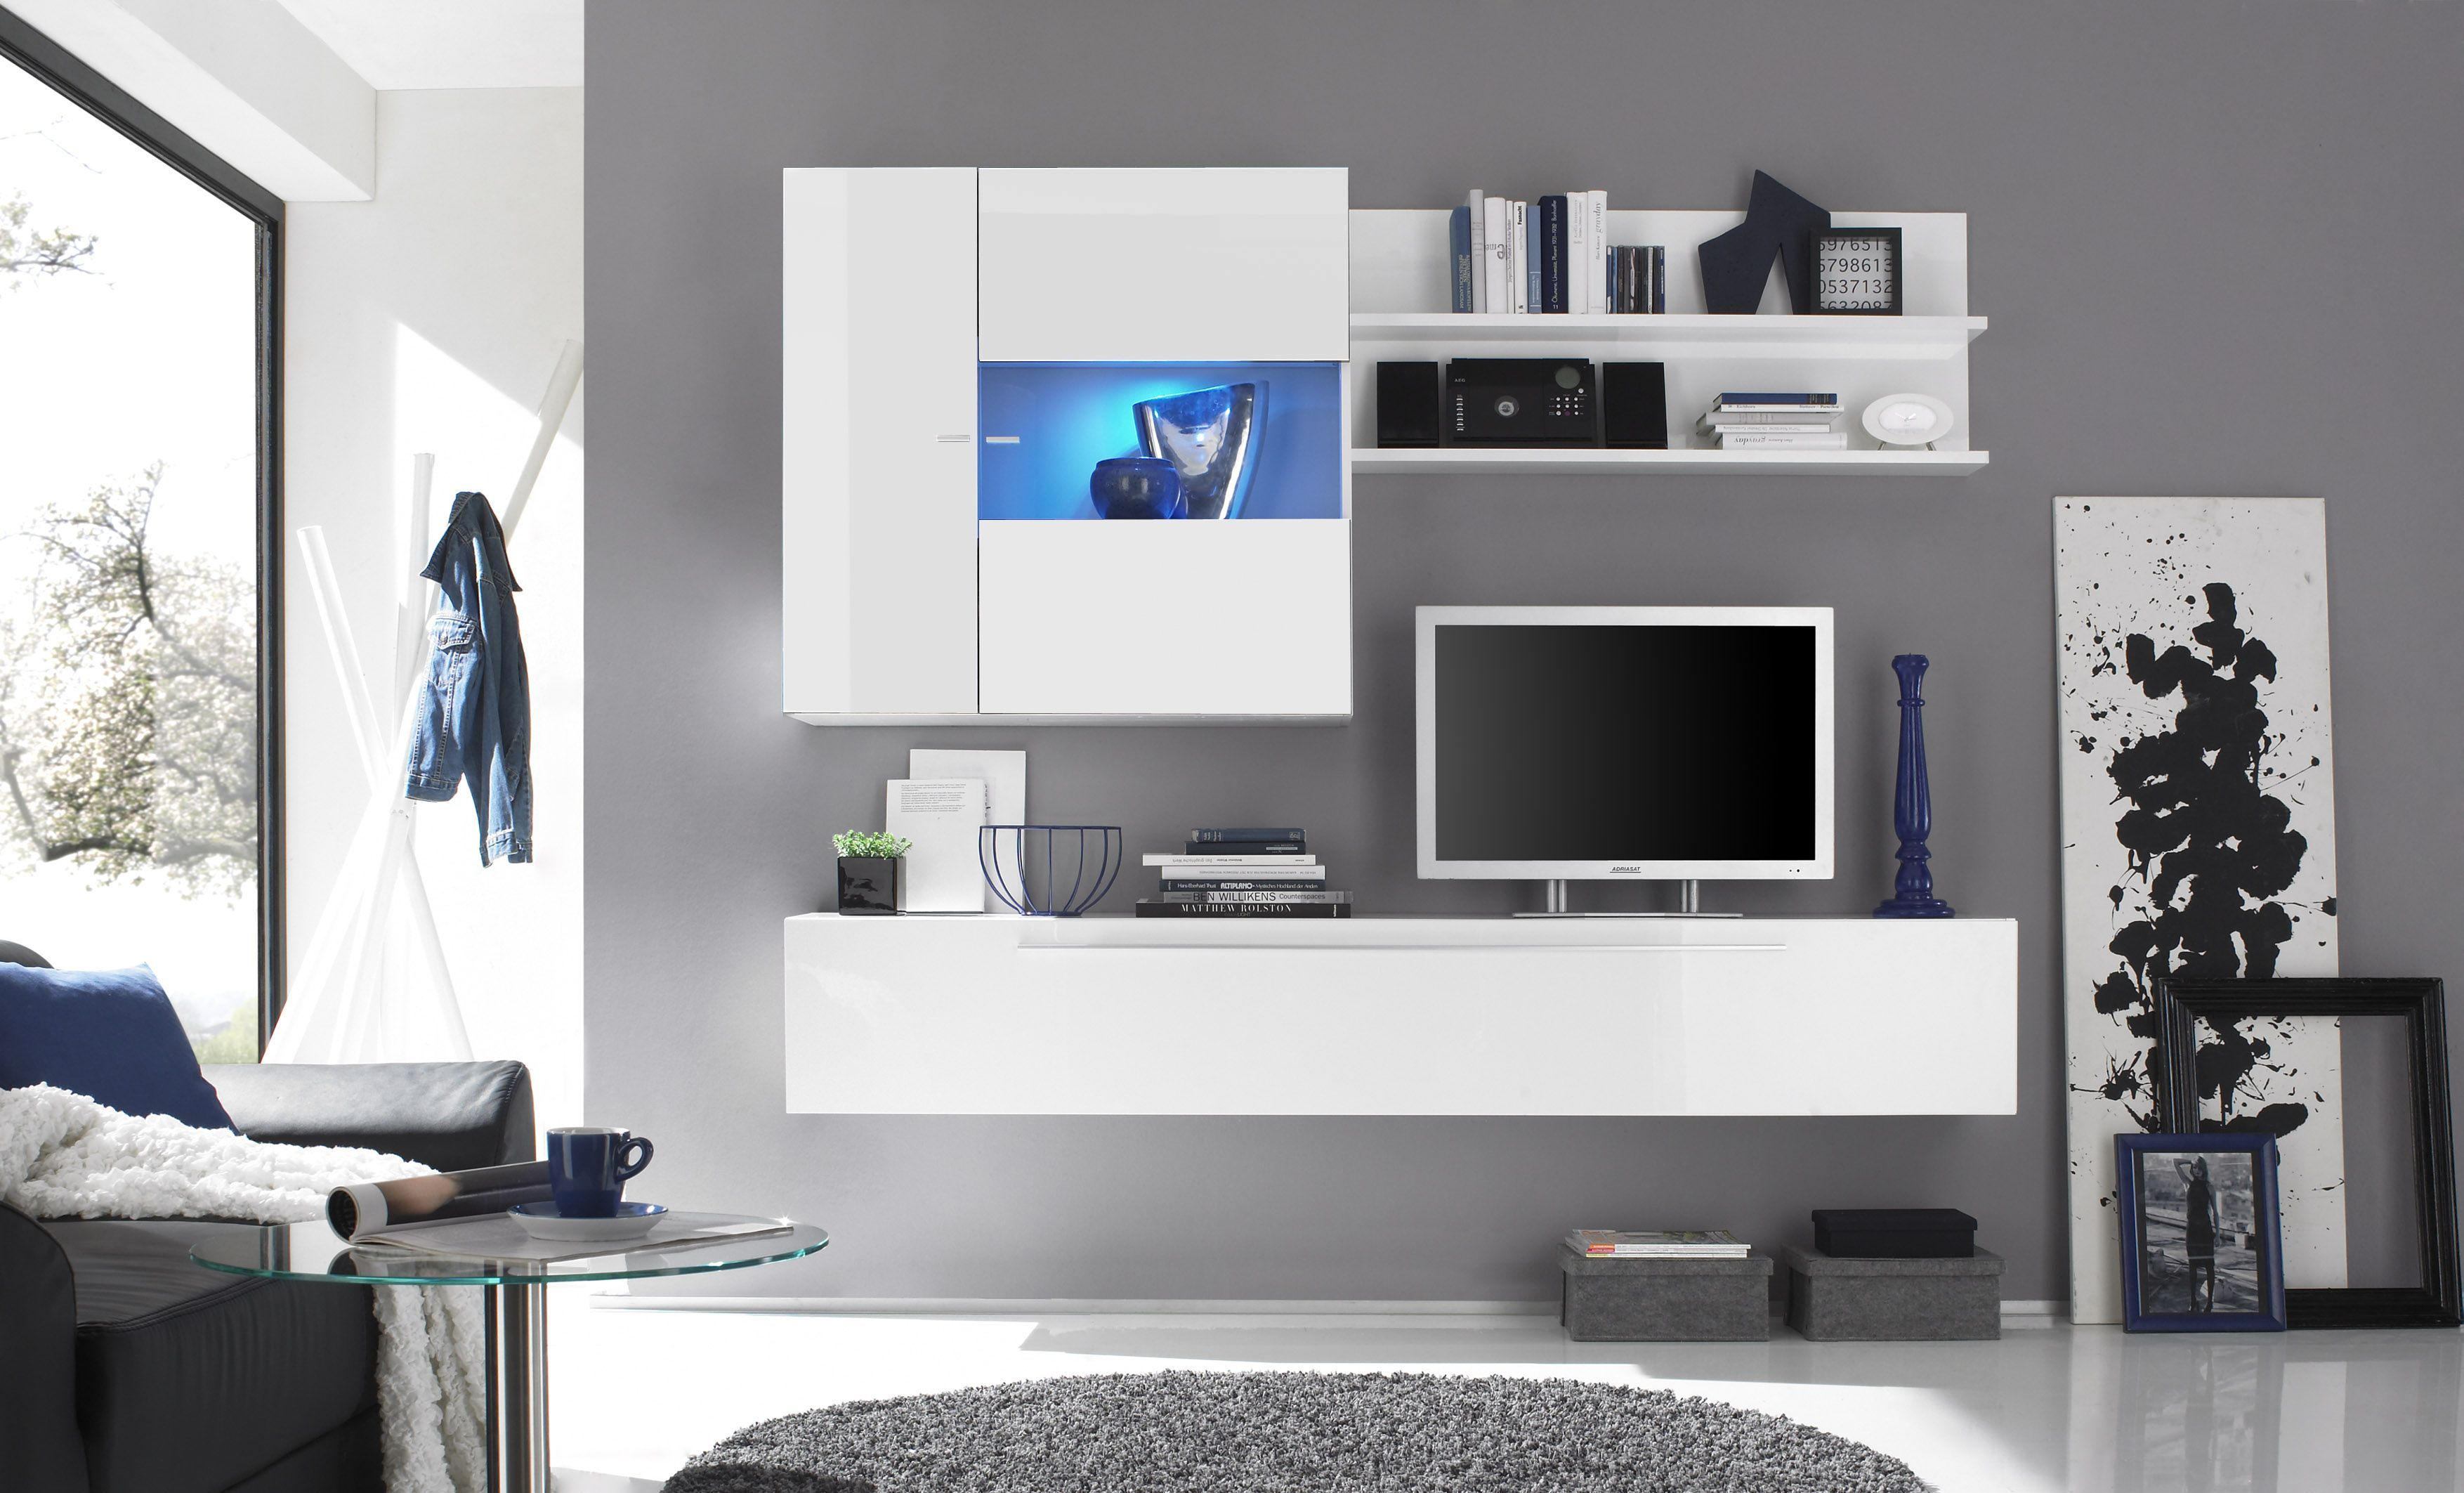 Delicieux 18 Chic And Modern TV Wall Mount Ideas For Living Room